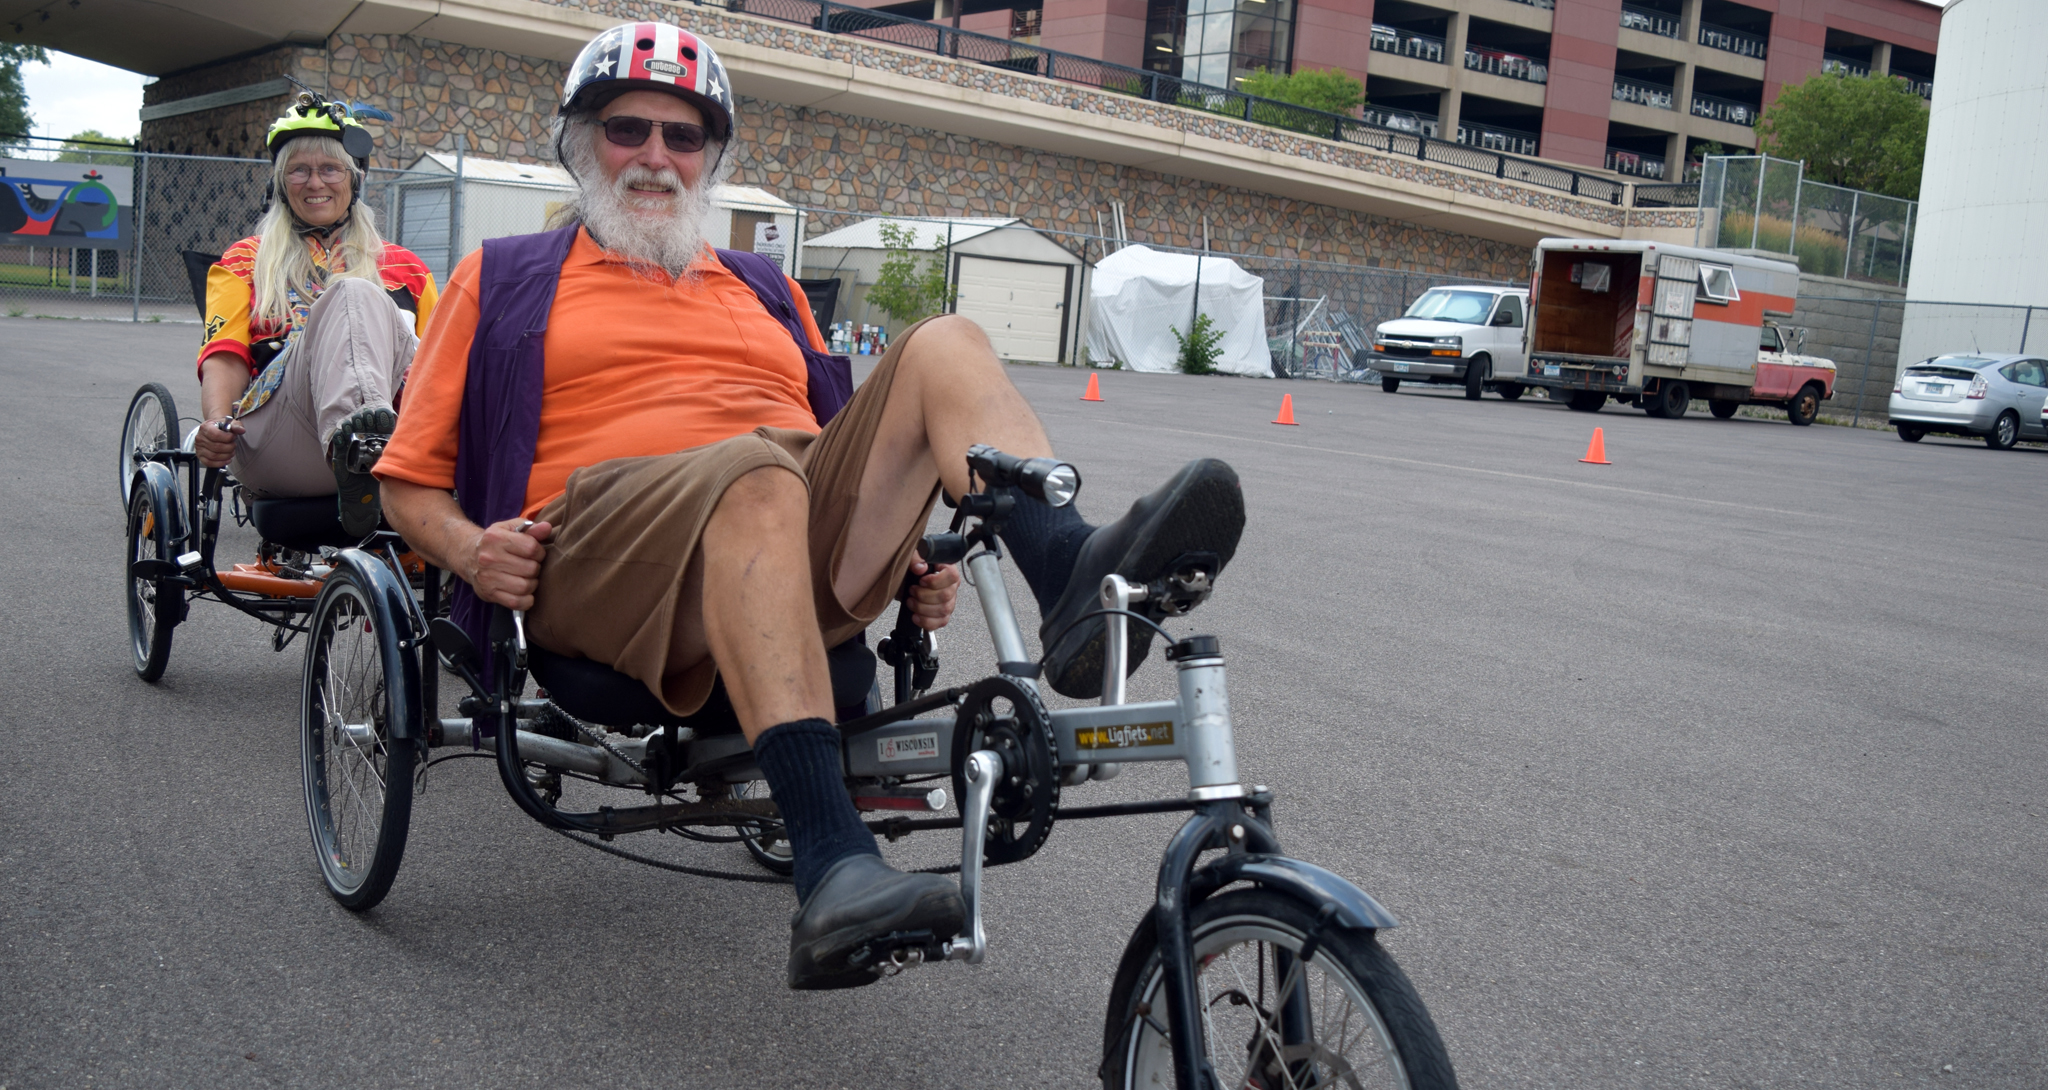 TC Adaptive Cycling helps increase participation and access to cycling among individuals with disabilities.